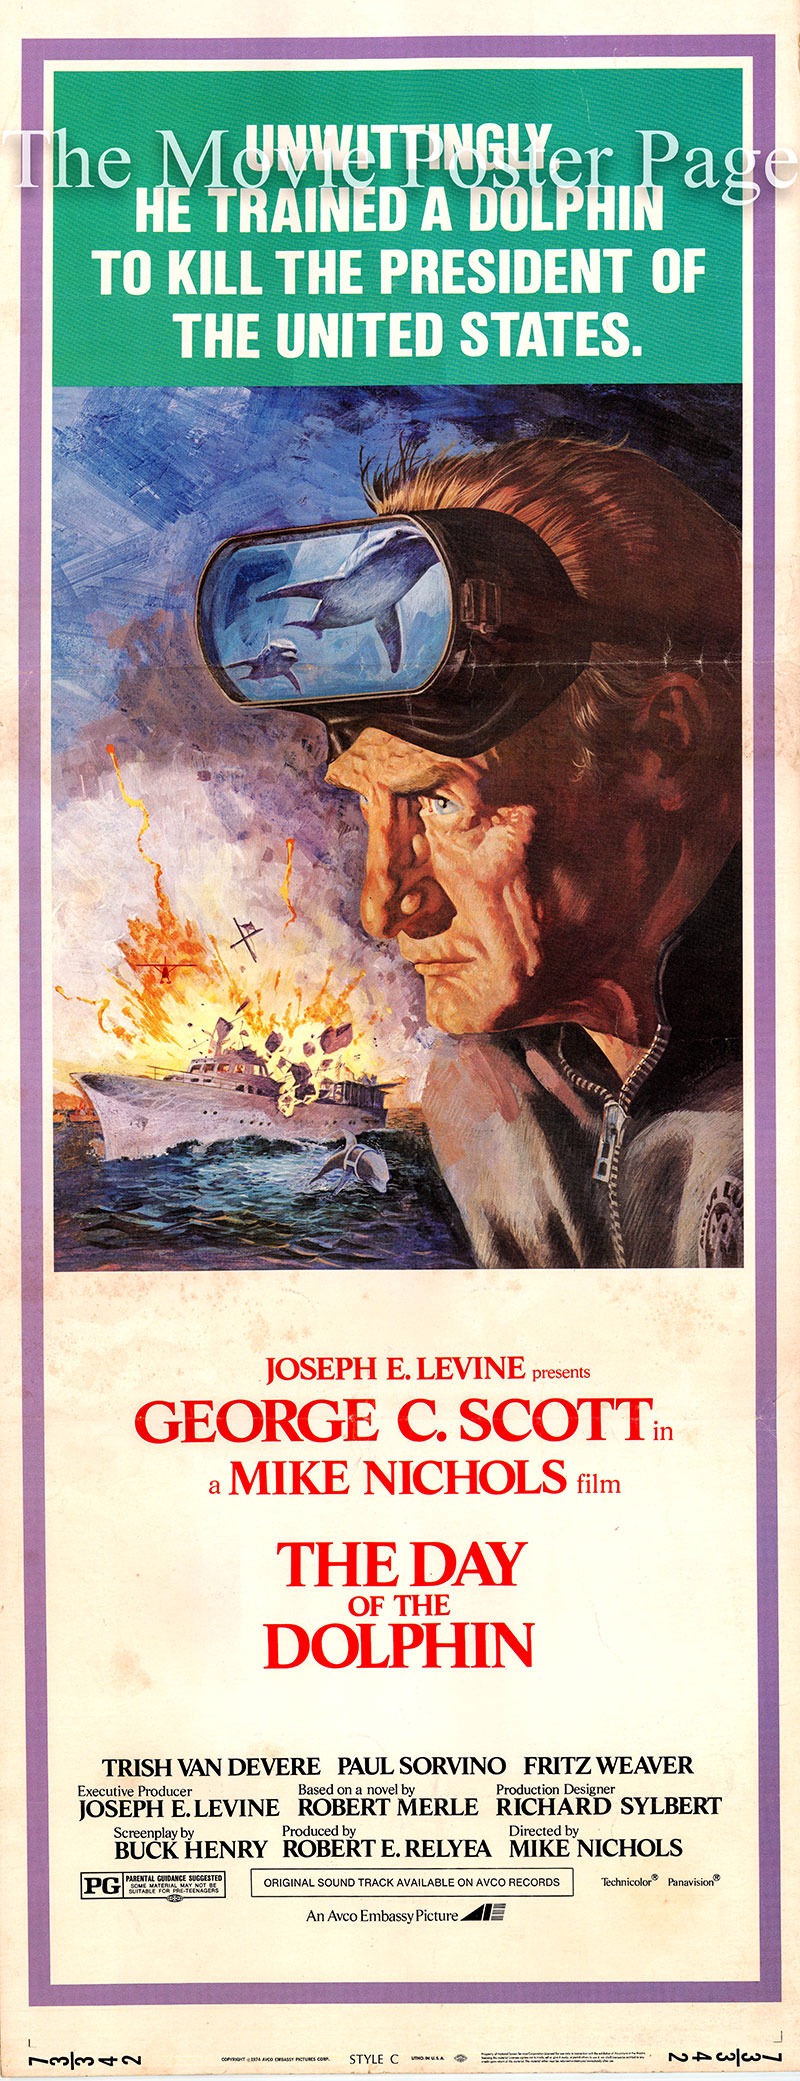 Pictured is a US insert promotional poster for the 1973 Mike Nichols film The Day of the Dolphin starring George C. Scott as Dr. Jacob Terrell.